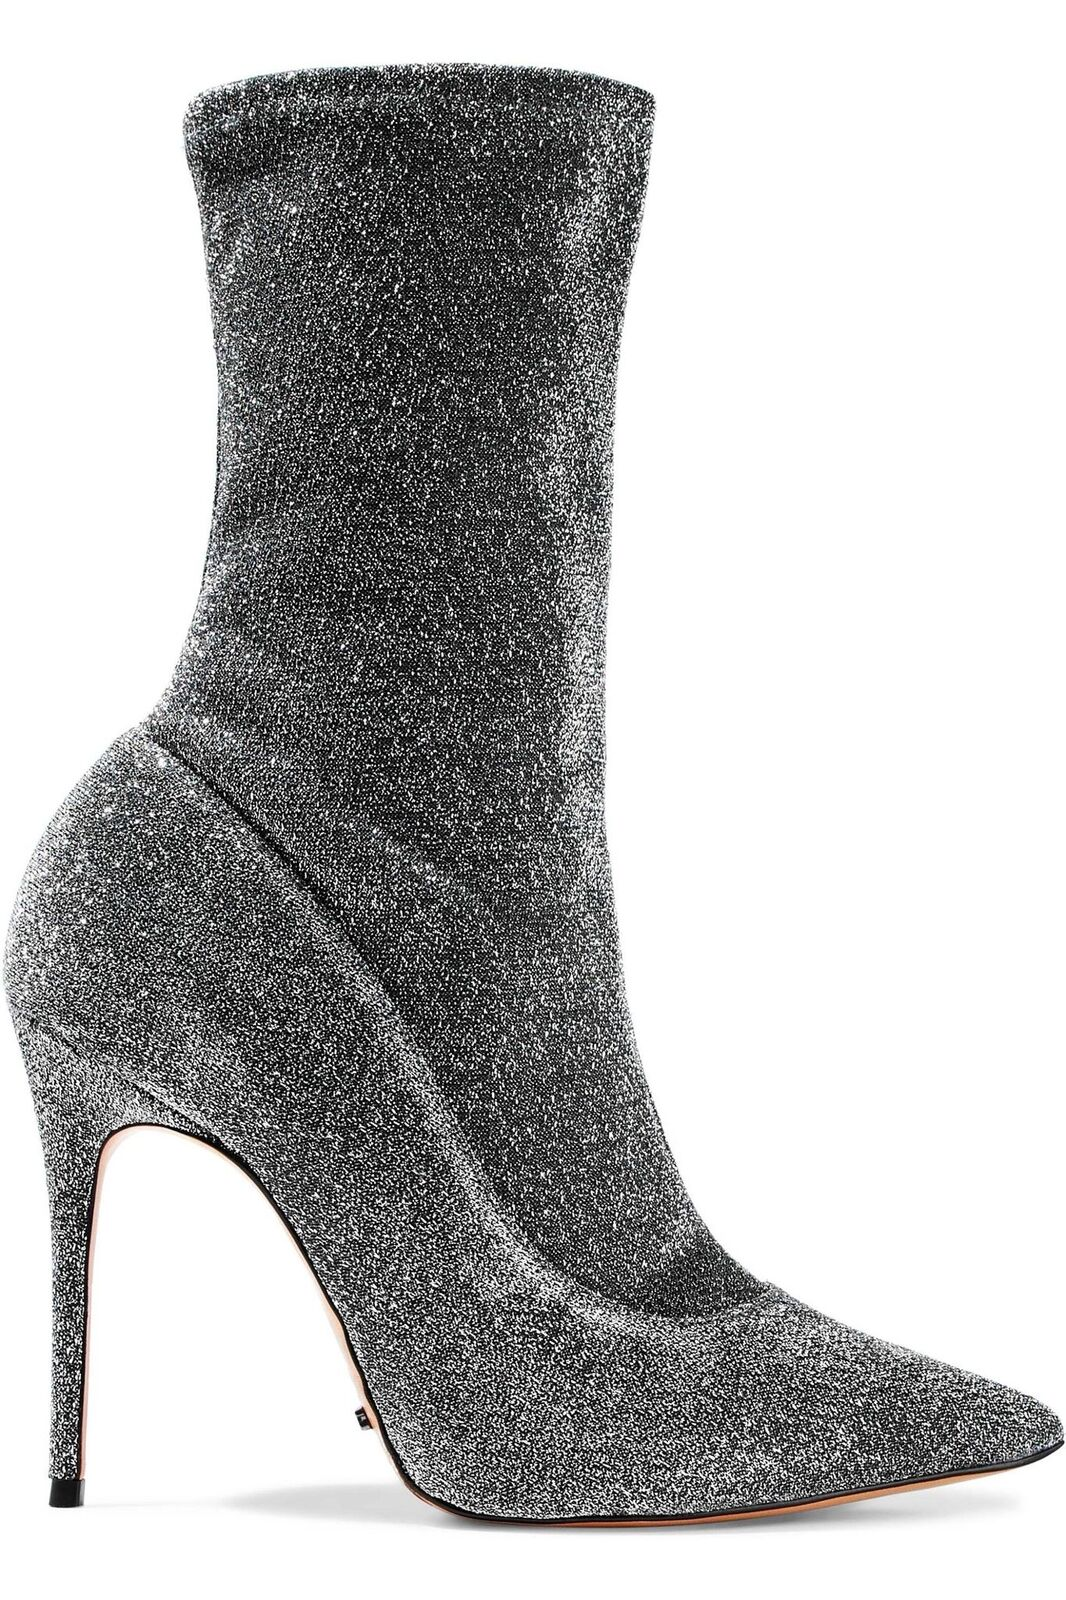 SCHUTZ Women's Mislane Metallic Pointed Toe Sock Boot Fitted Black Silver